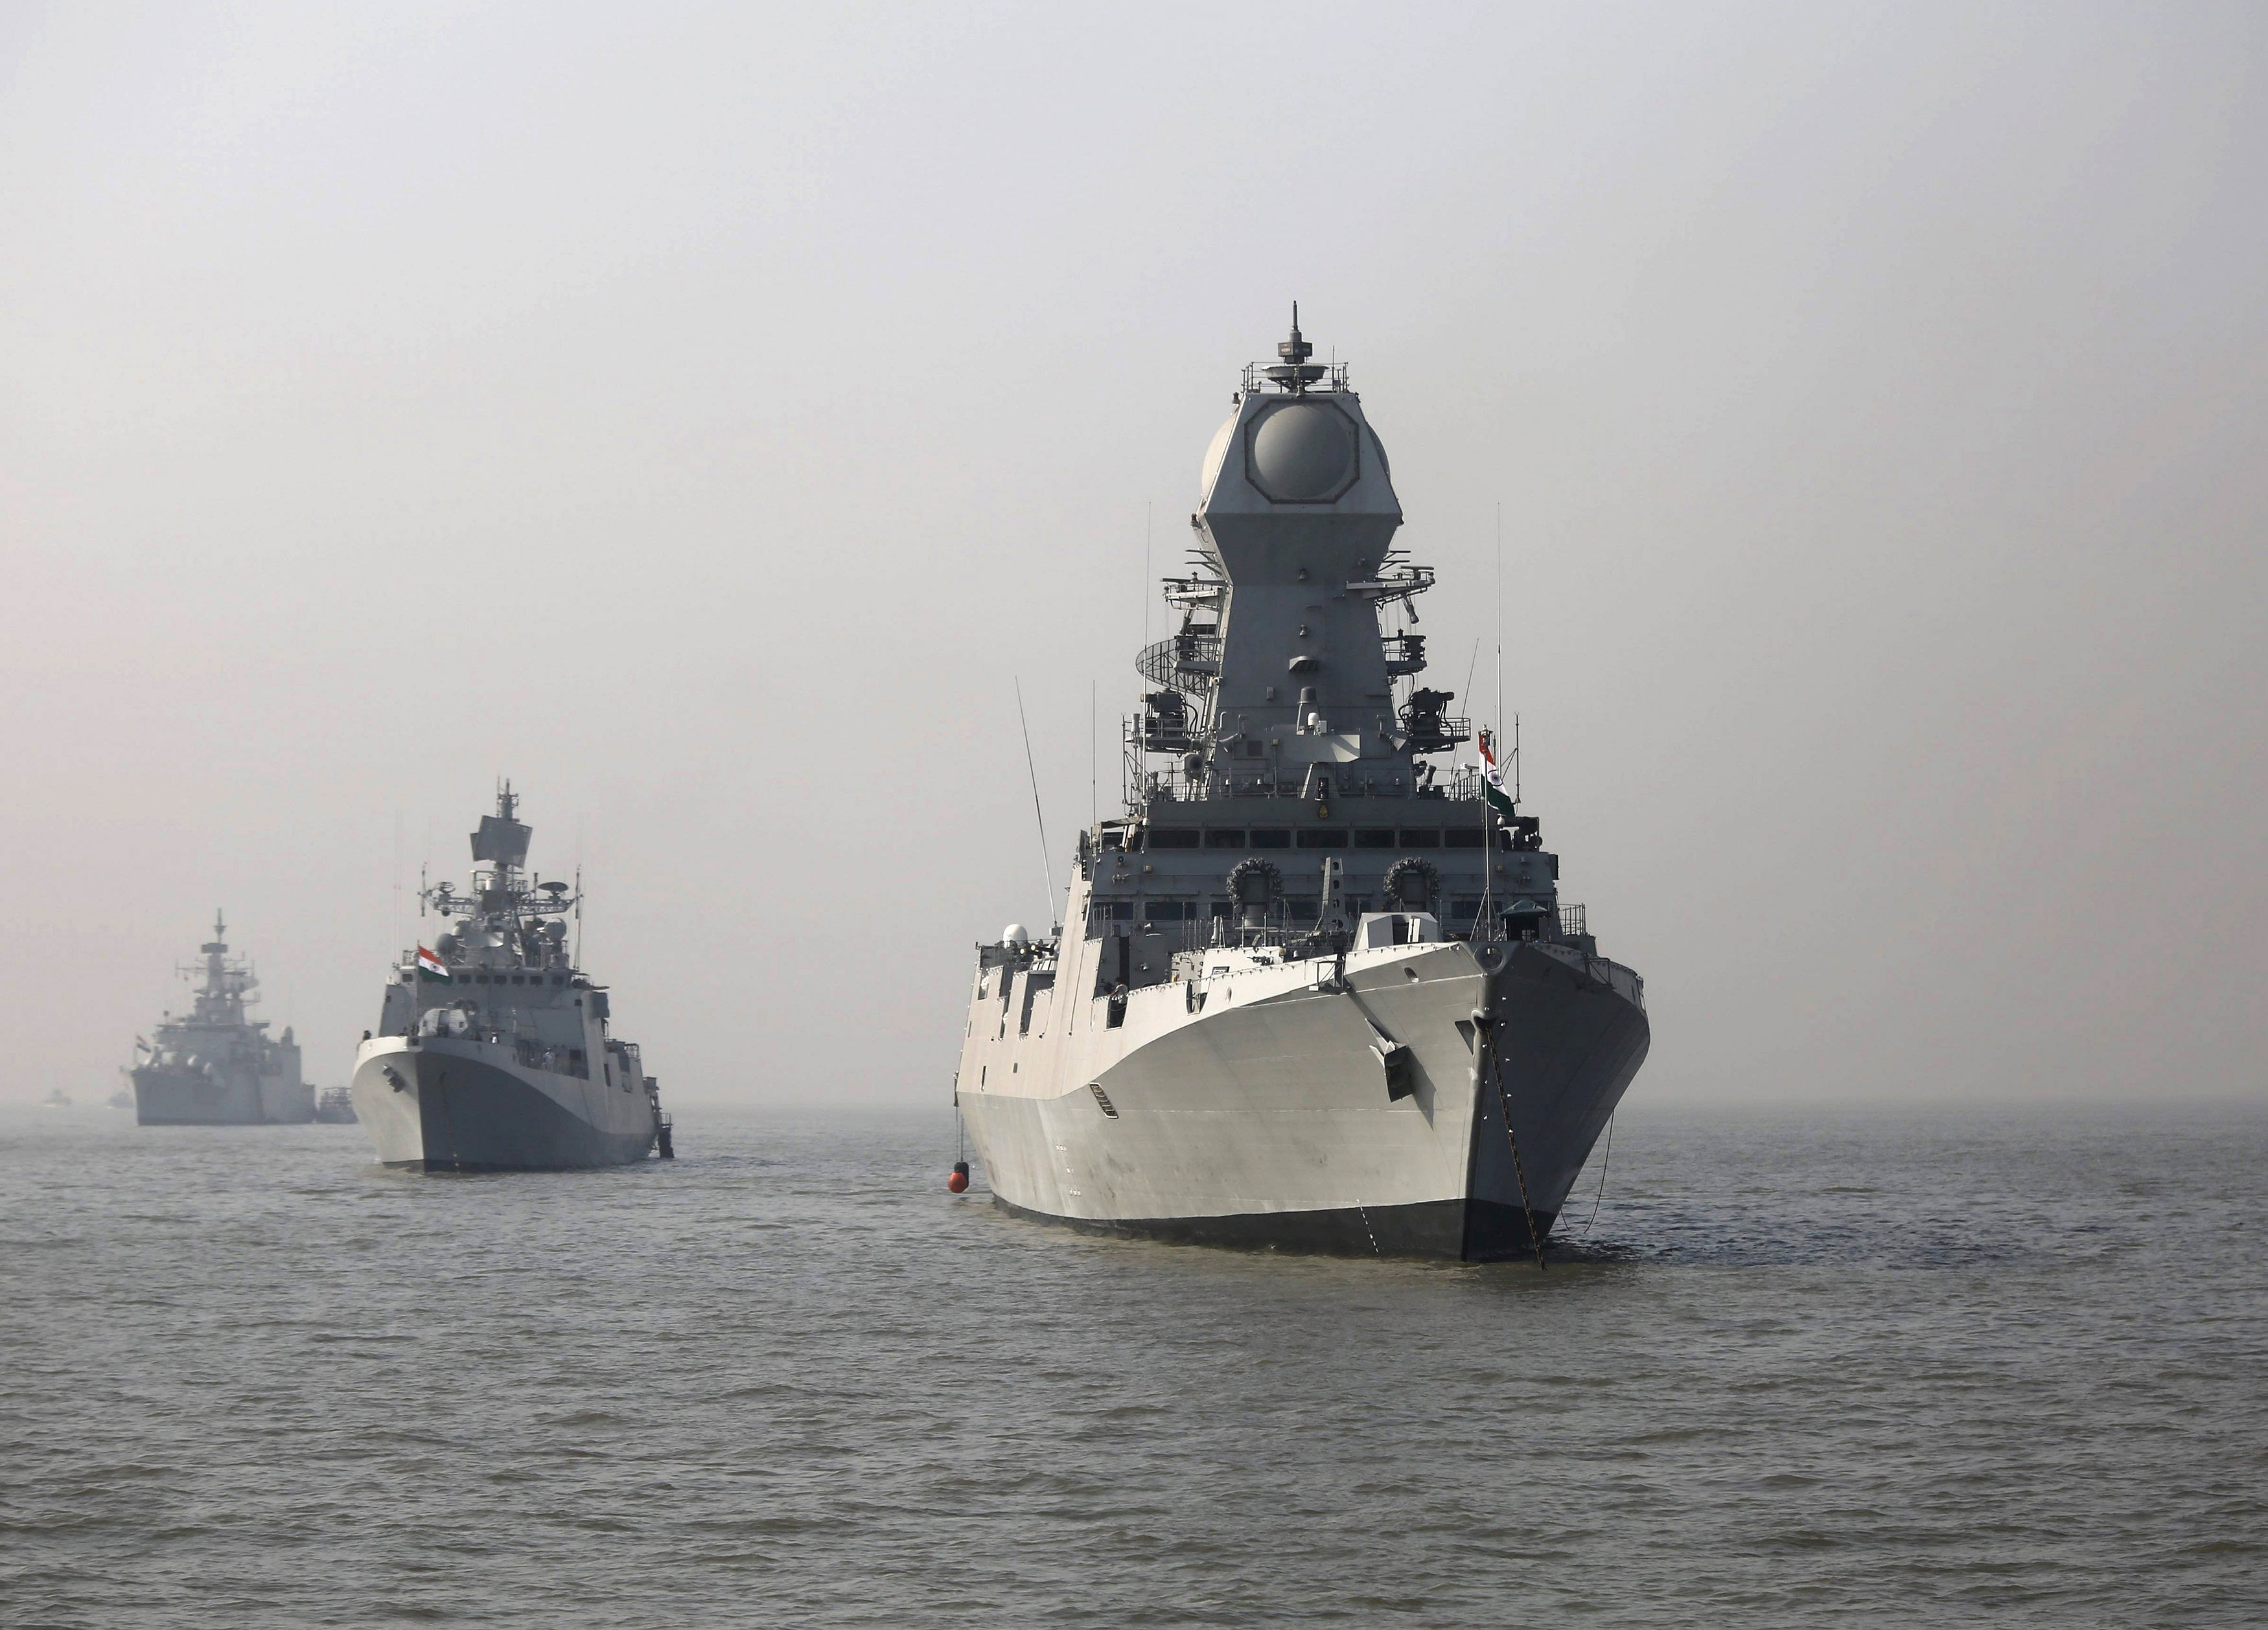 Indian Navy warships during a media event off the coast of Mumbai in December. Pakistan, despite modernisation of its navy, will find it difficult to tackle India's formidable naval arsenal alone. Hence its dependence on China.